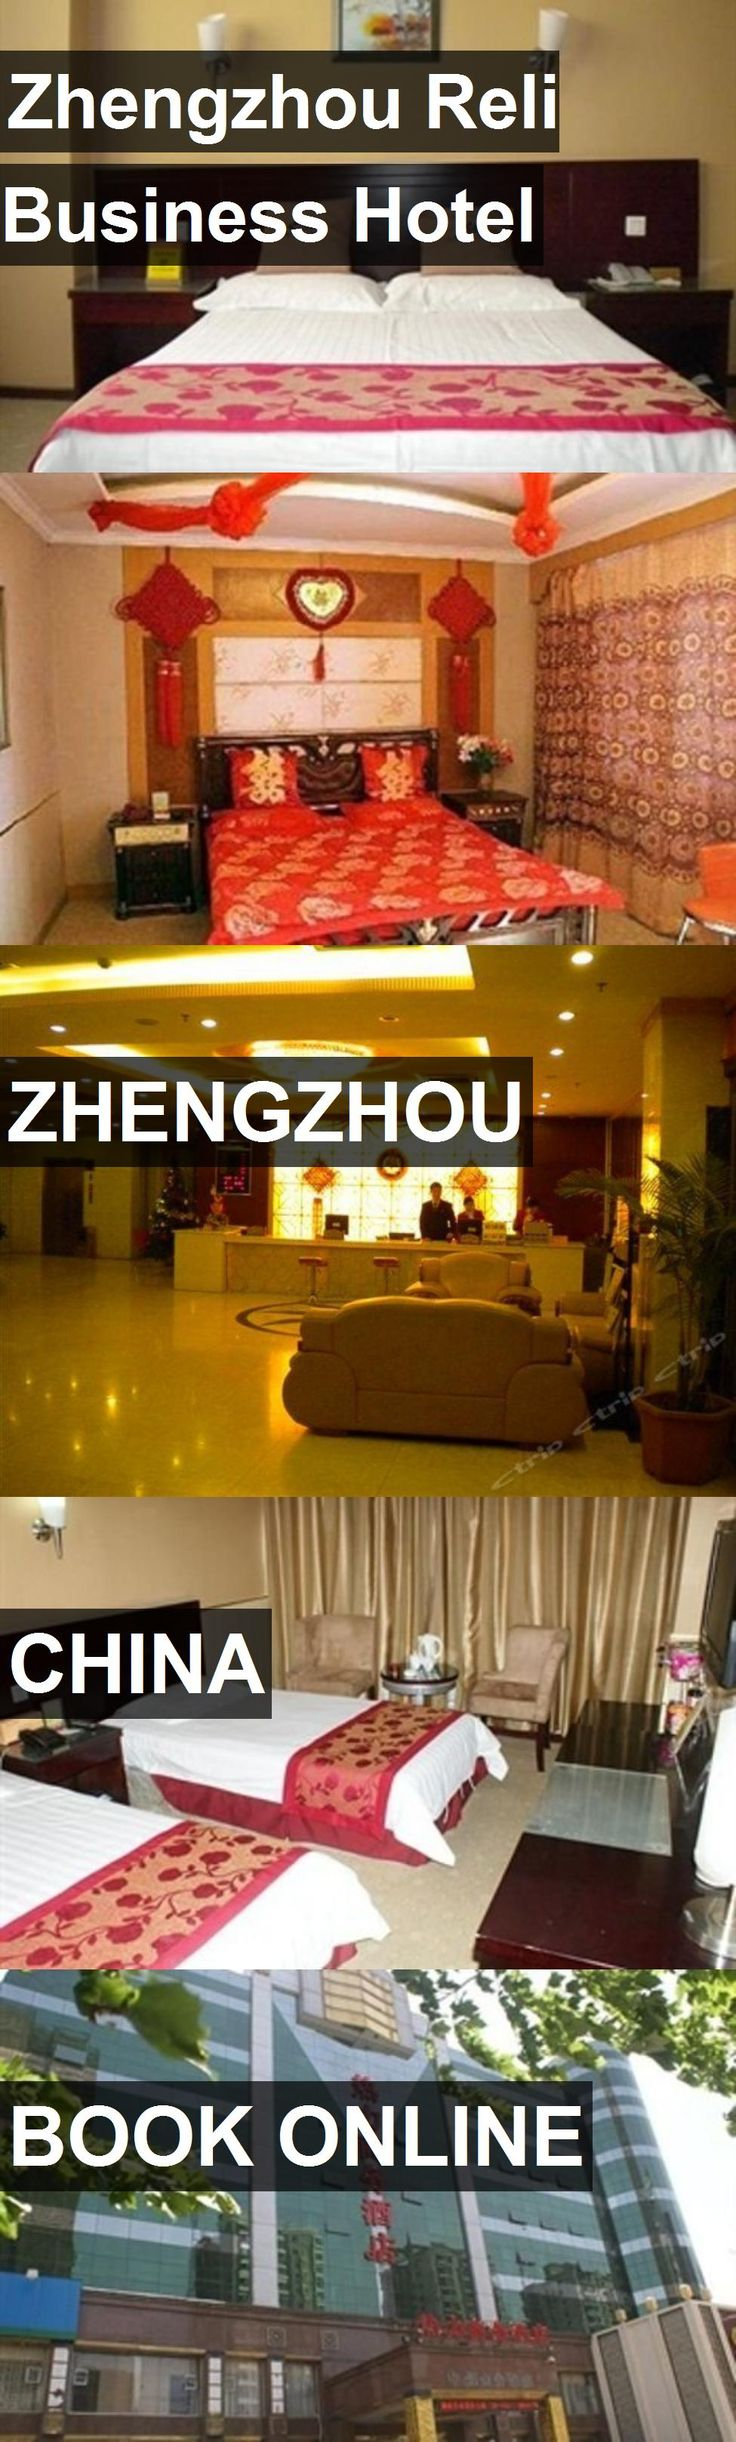 Zhengzhou Reli Business Hotel in Zhengzhou, China. For more information, photos, reviews and best prices please follow the link. #China #Zhengzhou #travel #vacation #hotel